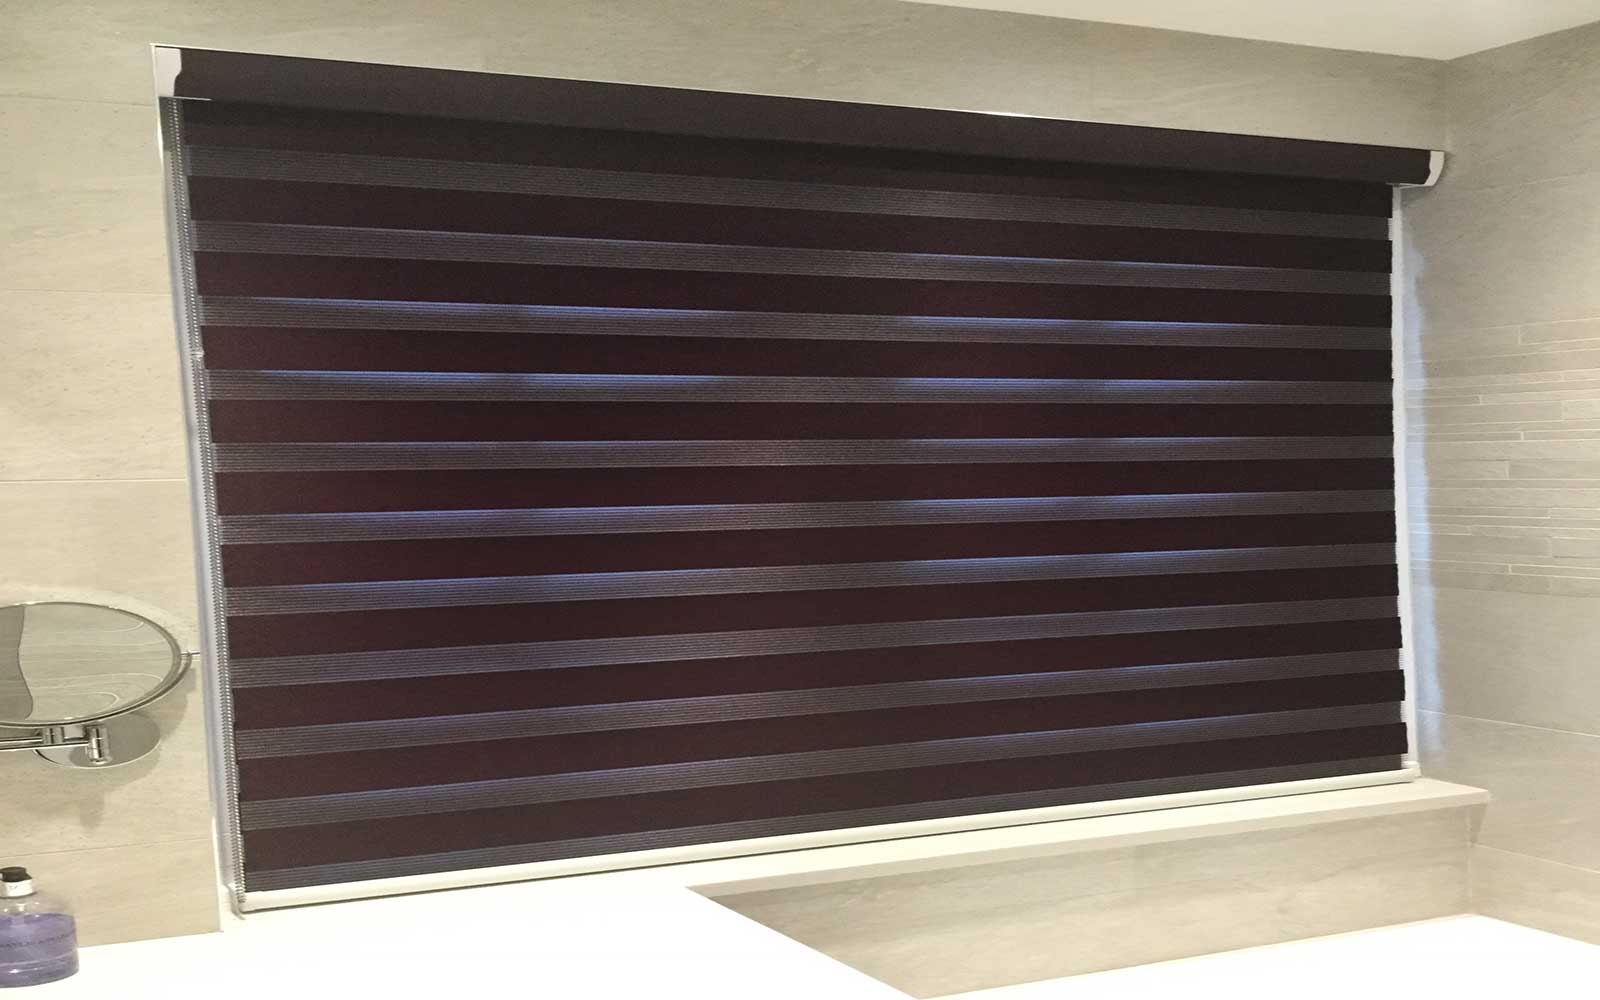 Closed Duo Fabric Roller Blinds In A Bathroom